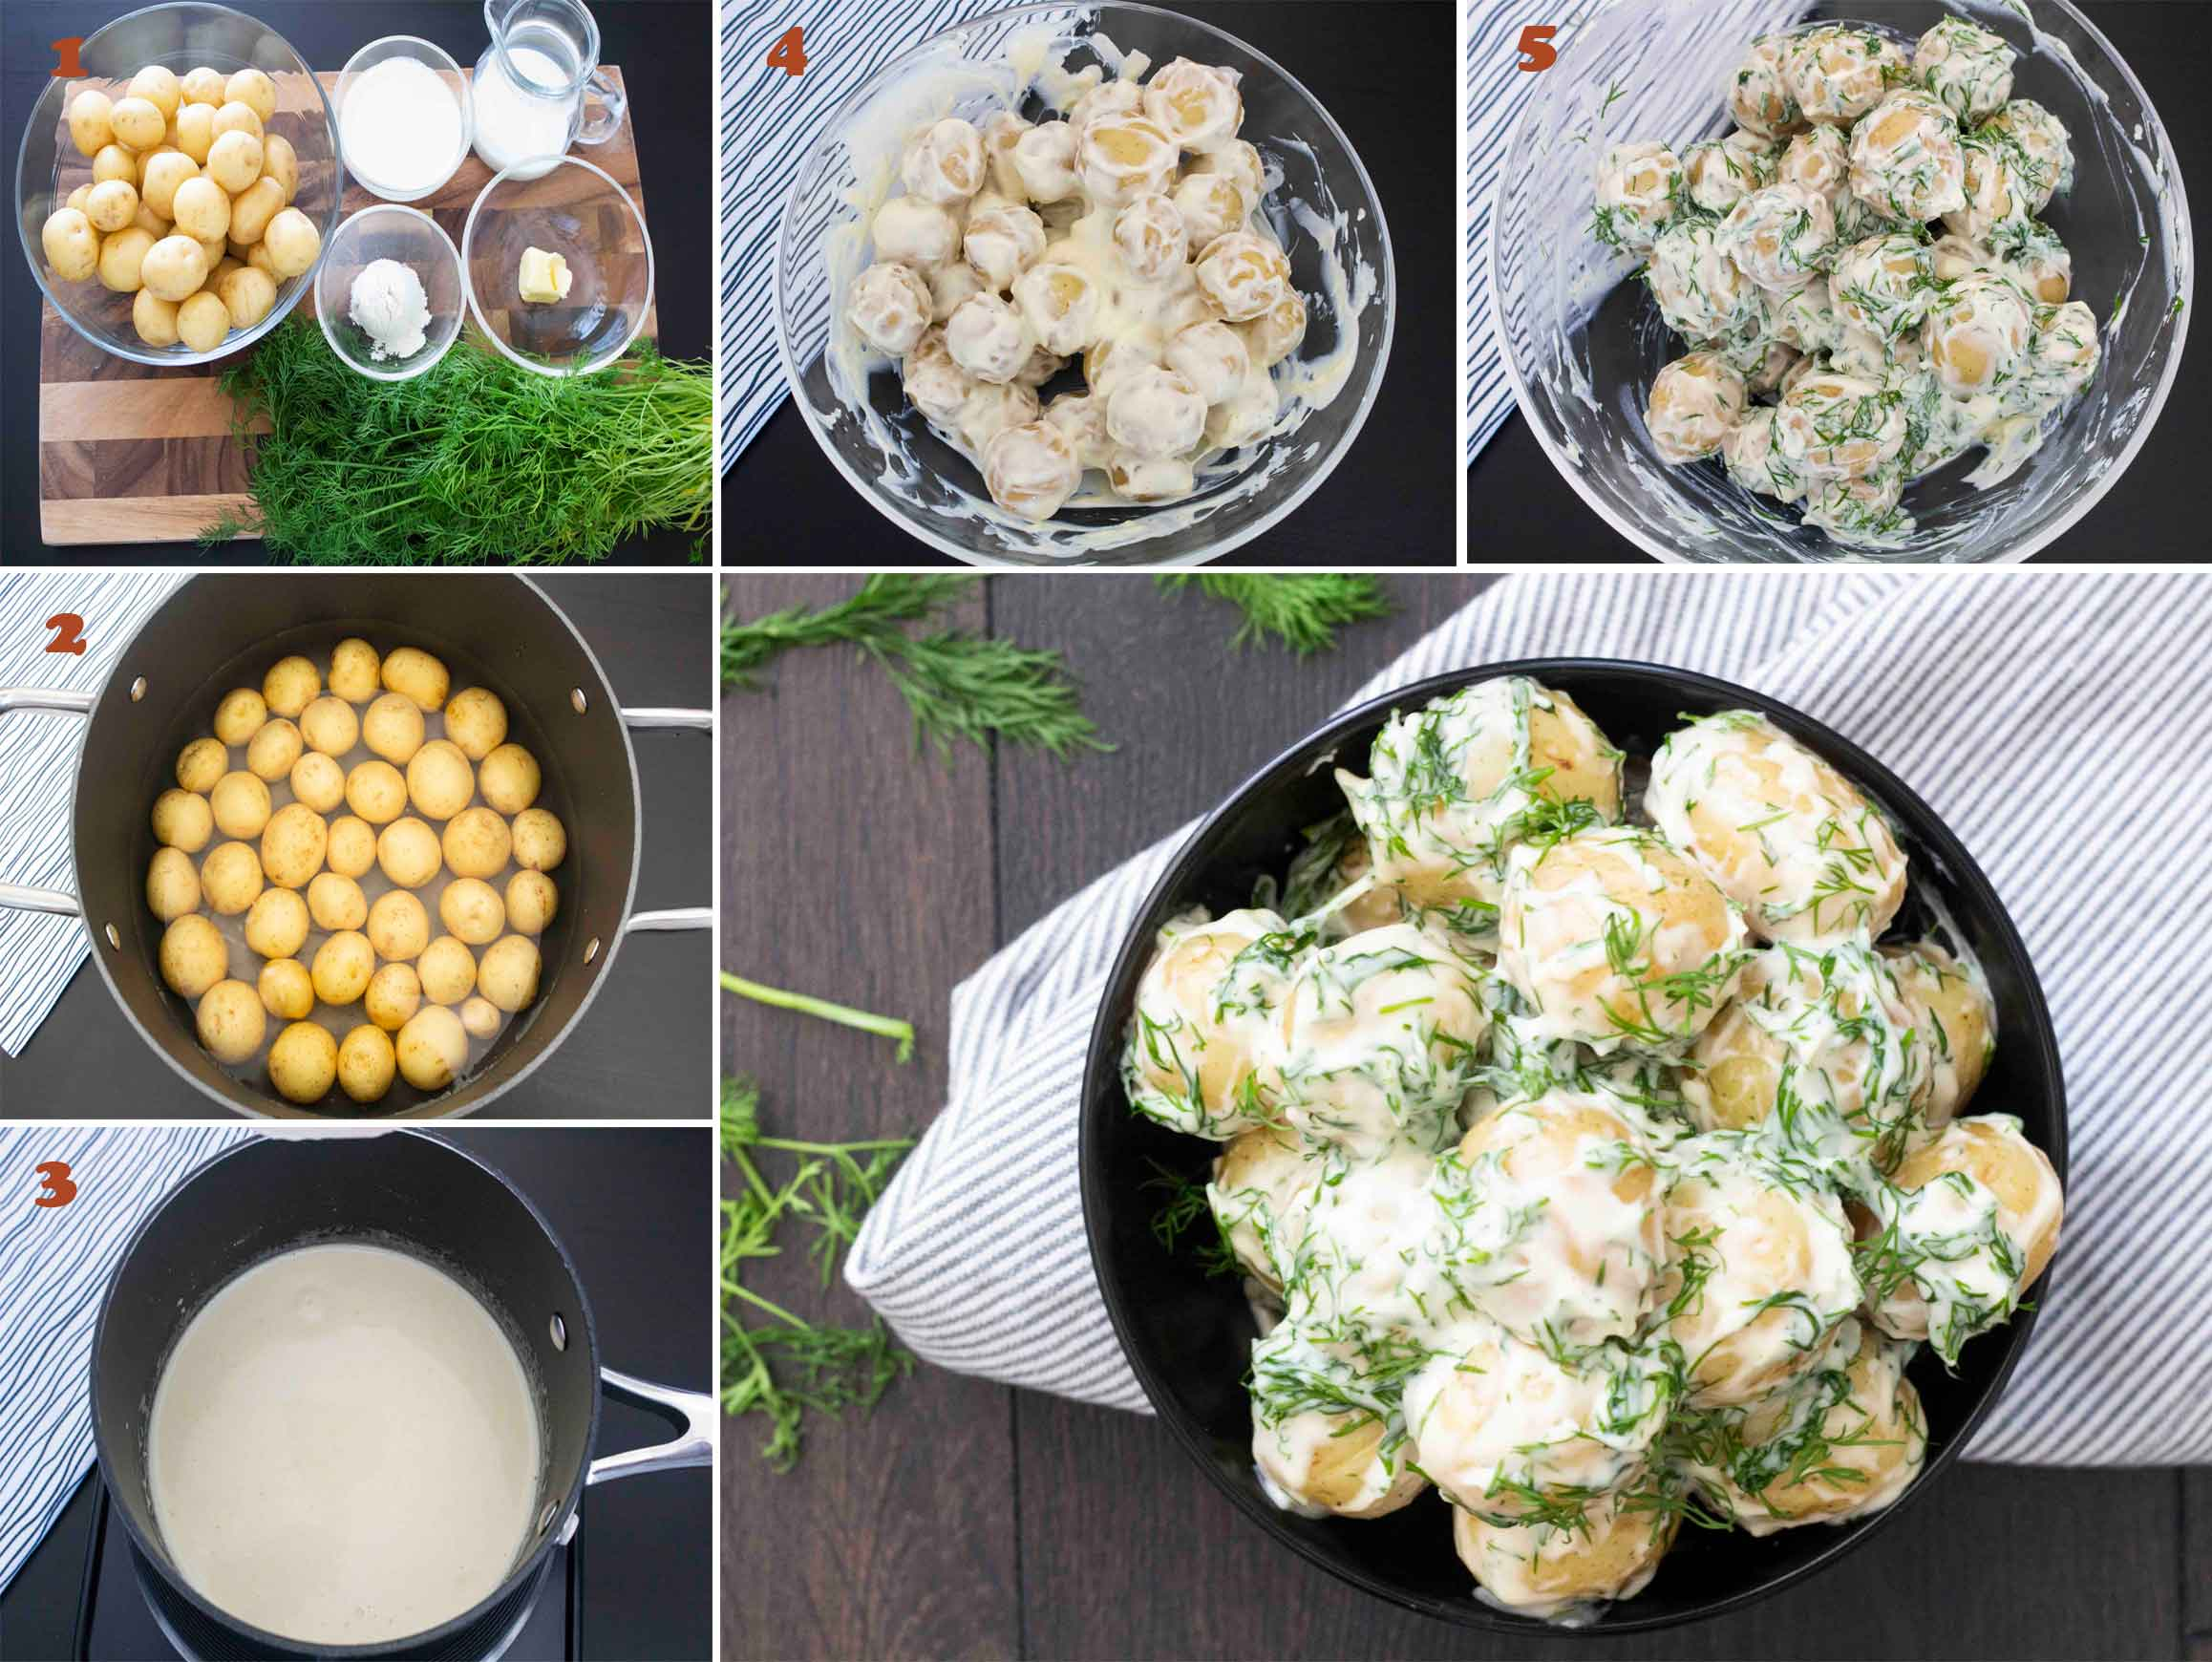 A collage of images showing steps on how to make Swedish Potatoes with Dill Cream Sauce